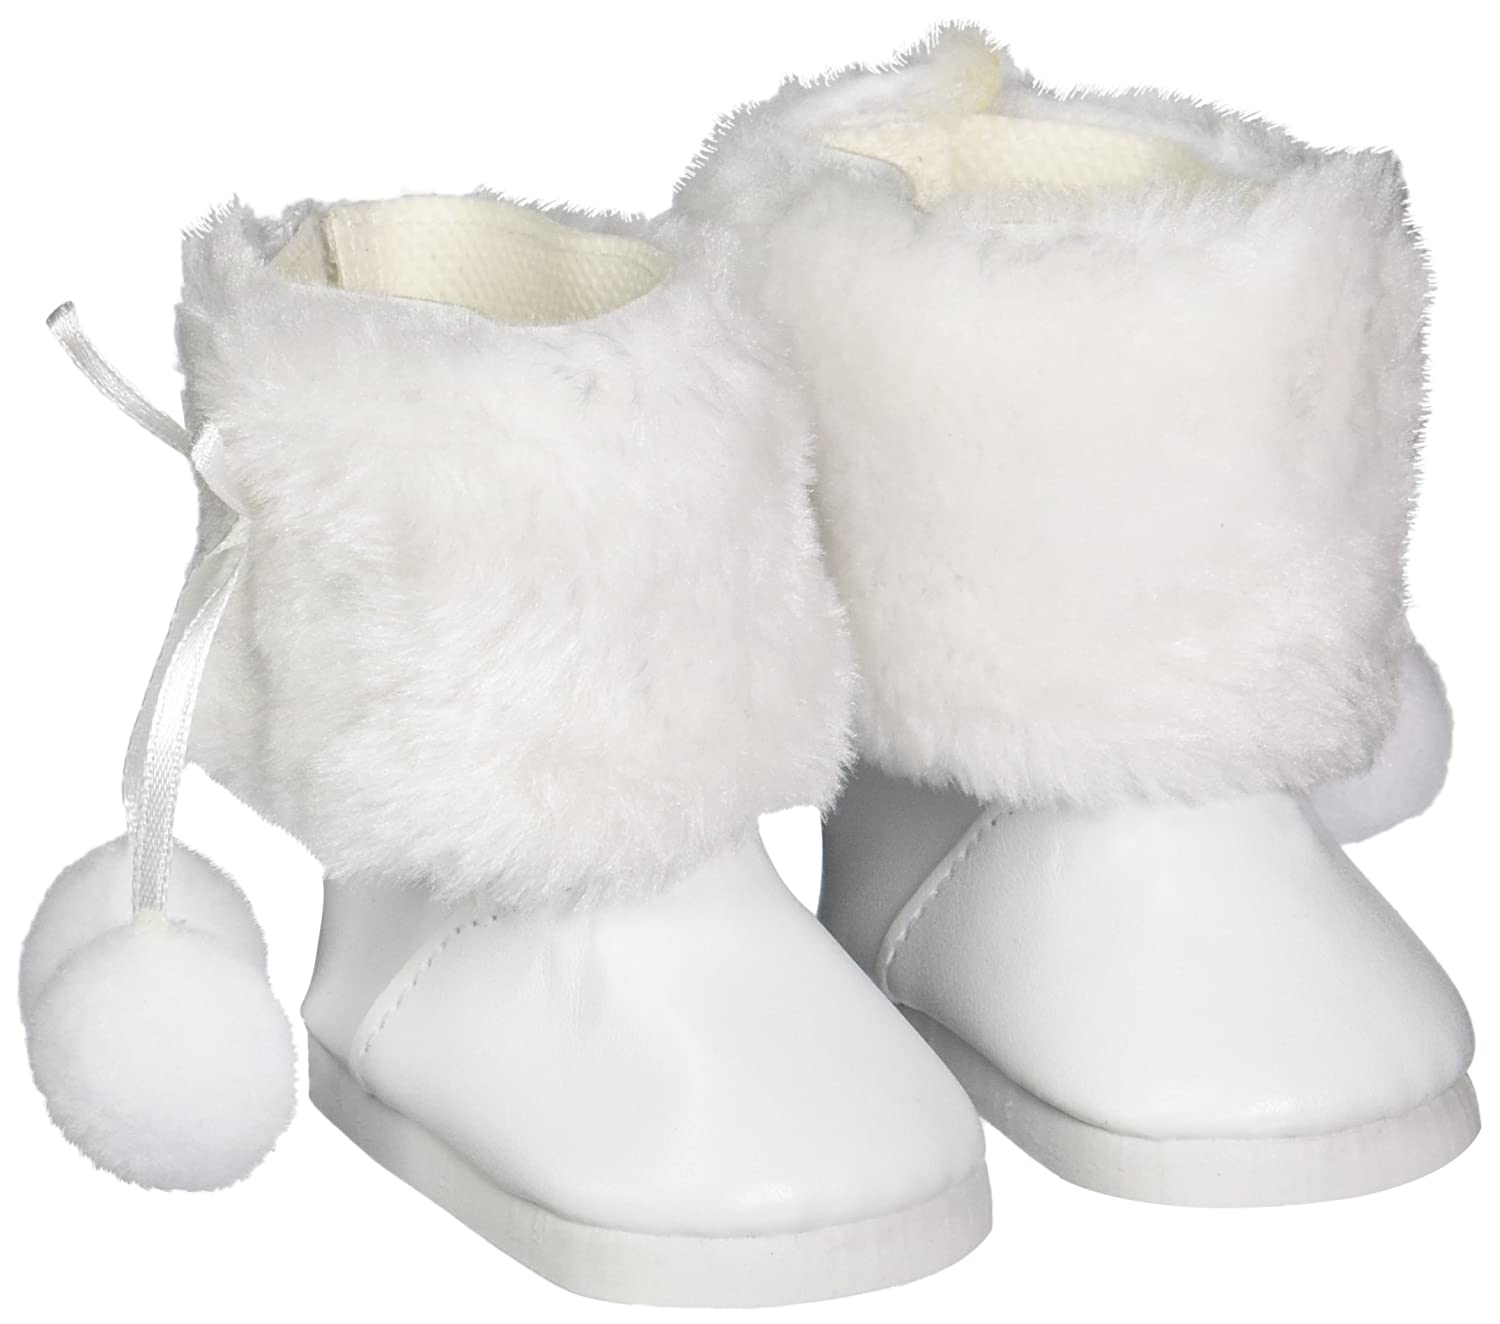 White Fur Boots with Pom Poms